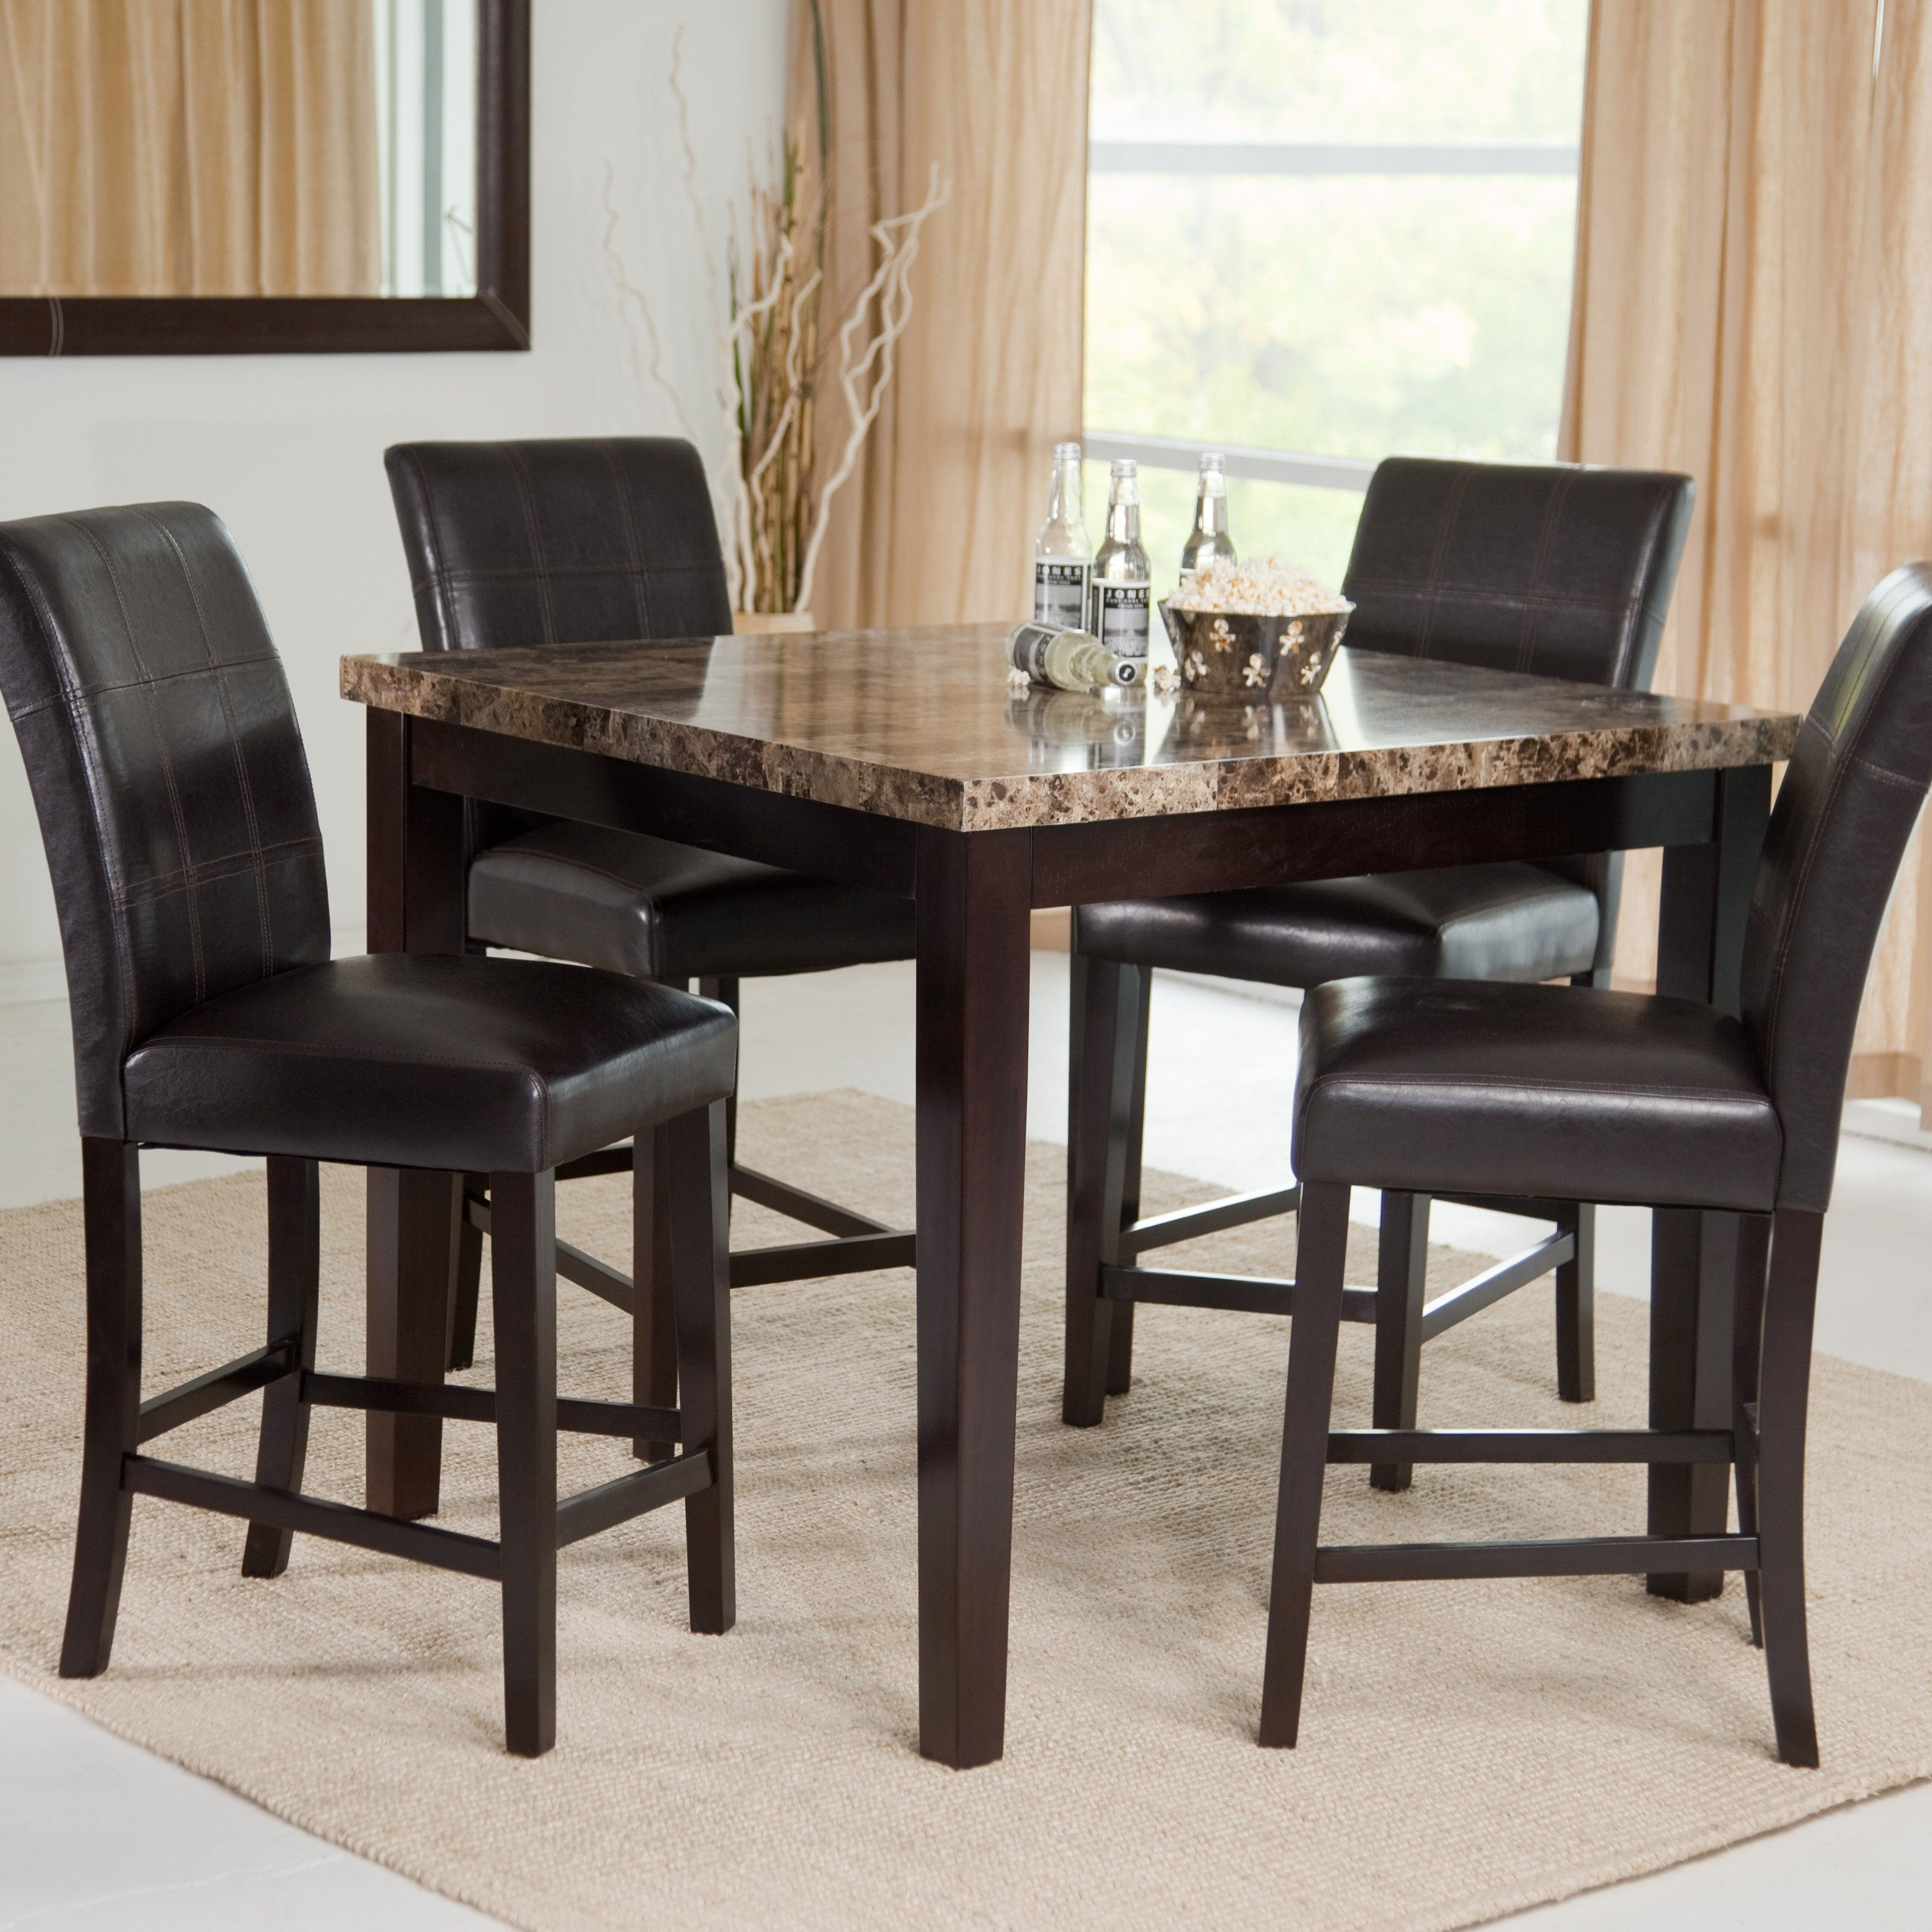 Have To Have It. Palazzo 5 Piece Counter Height Dining Set – $ (Image 6 of 20)